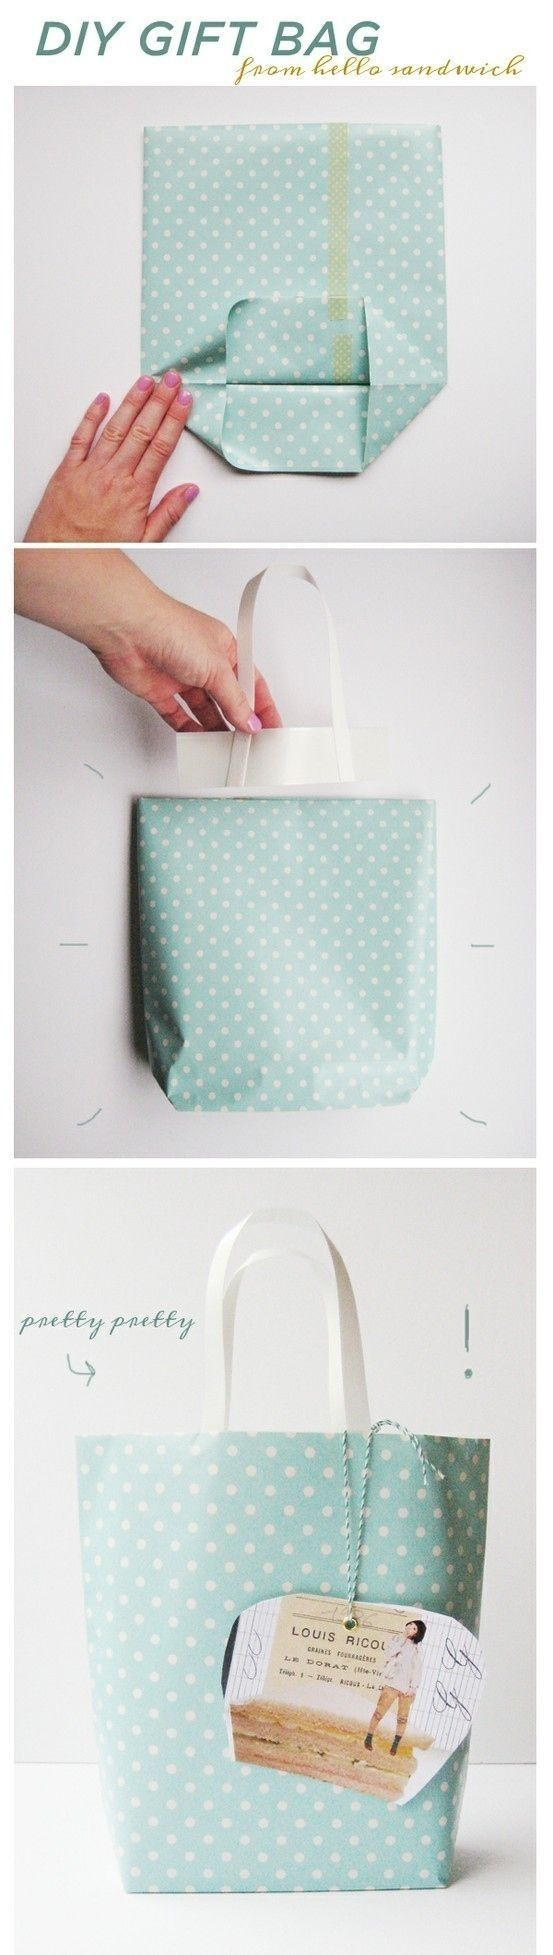 Diy gift bag: easy and simple to do ! x